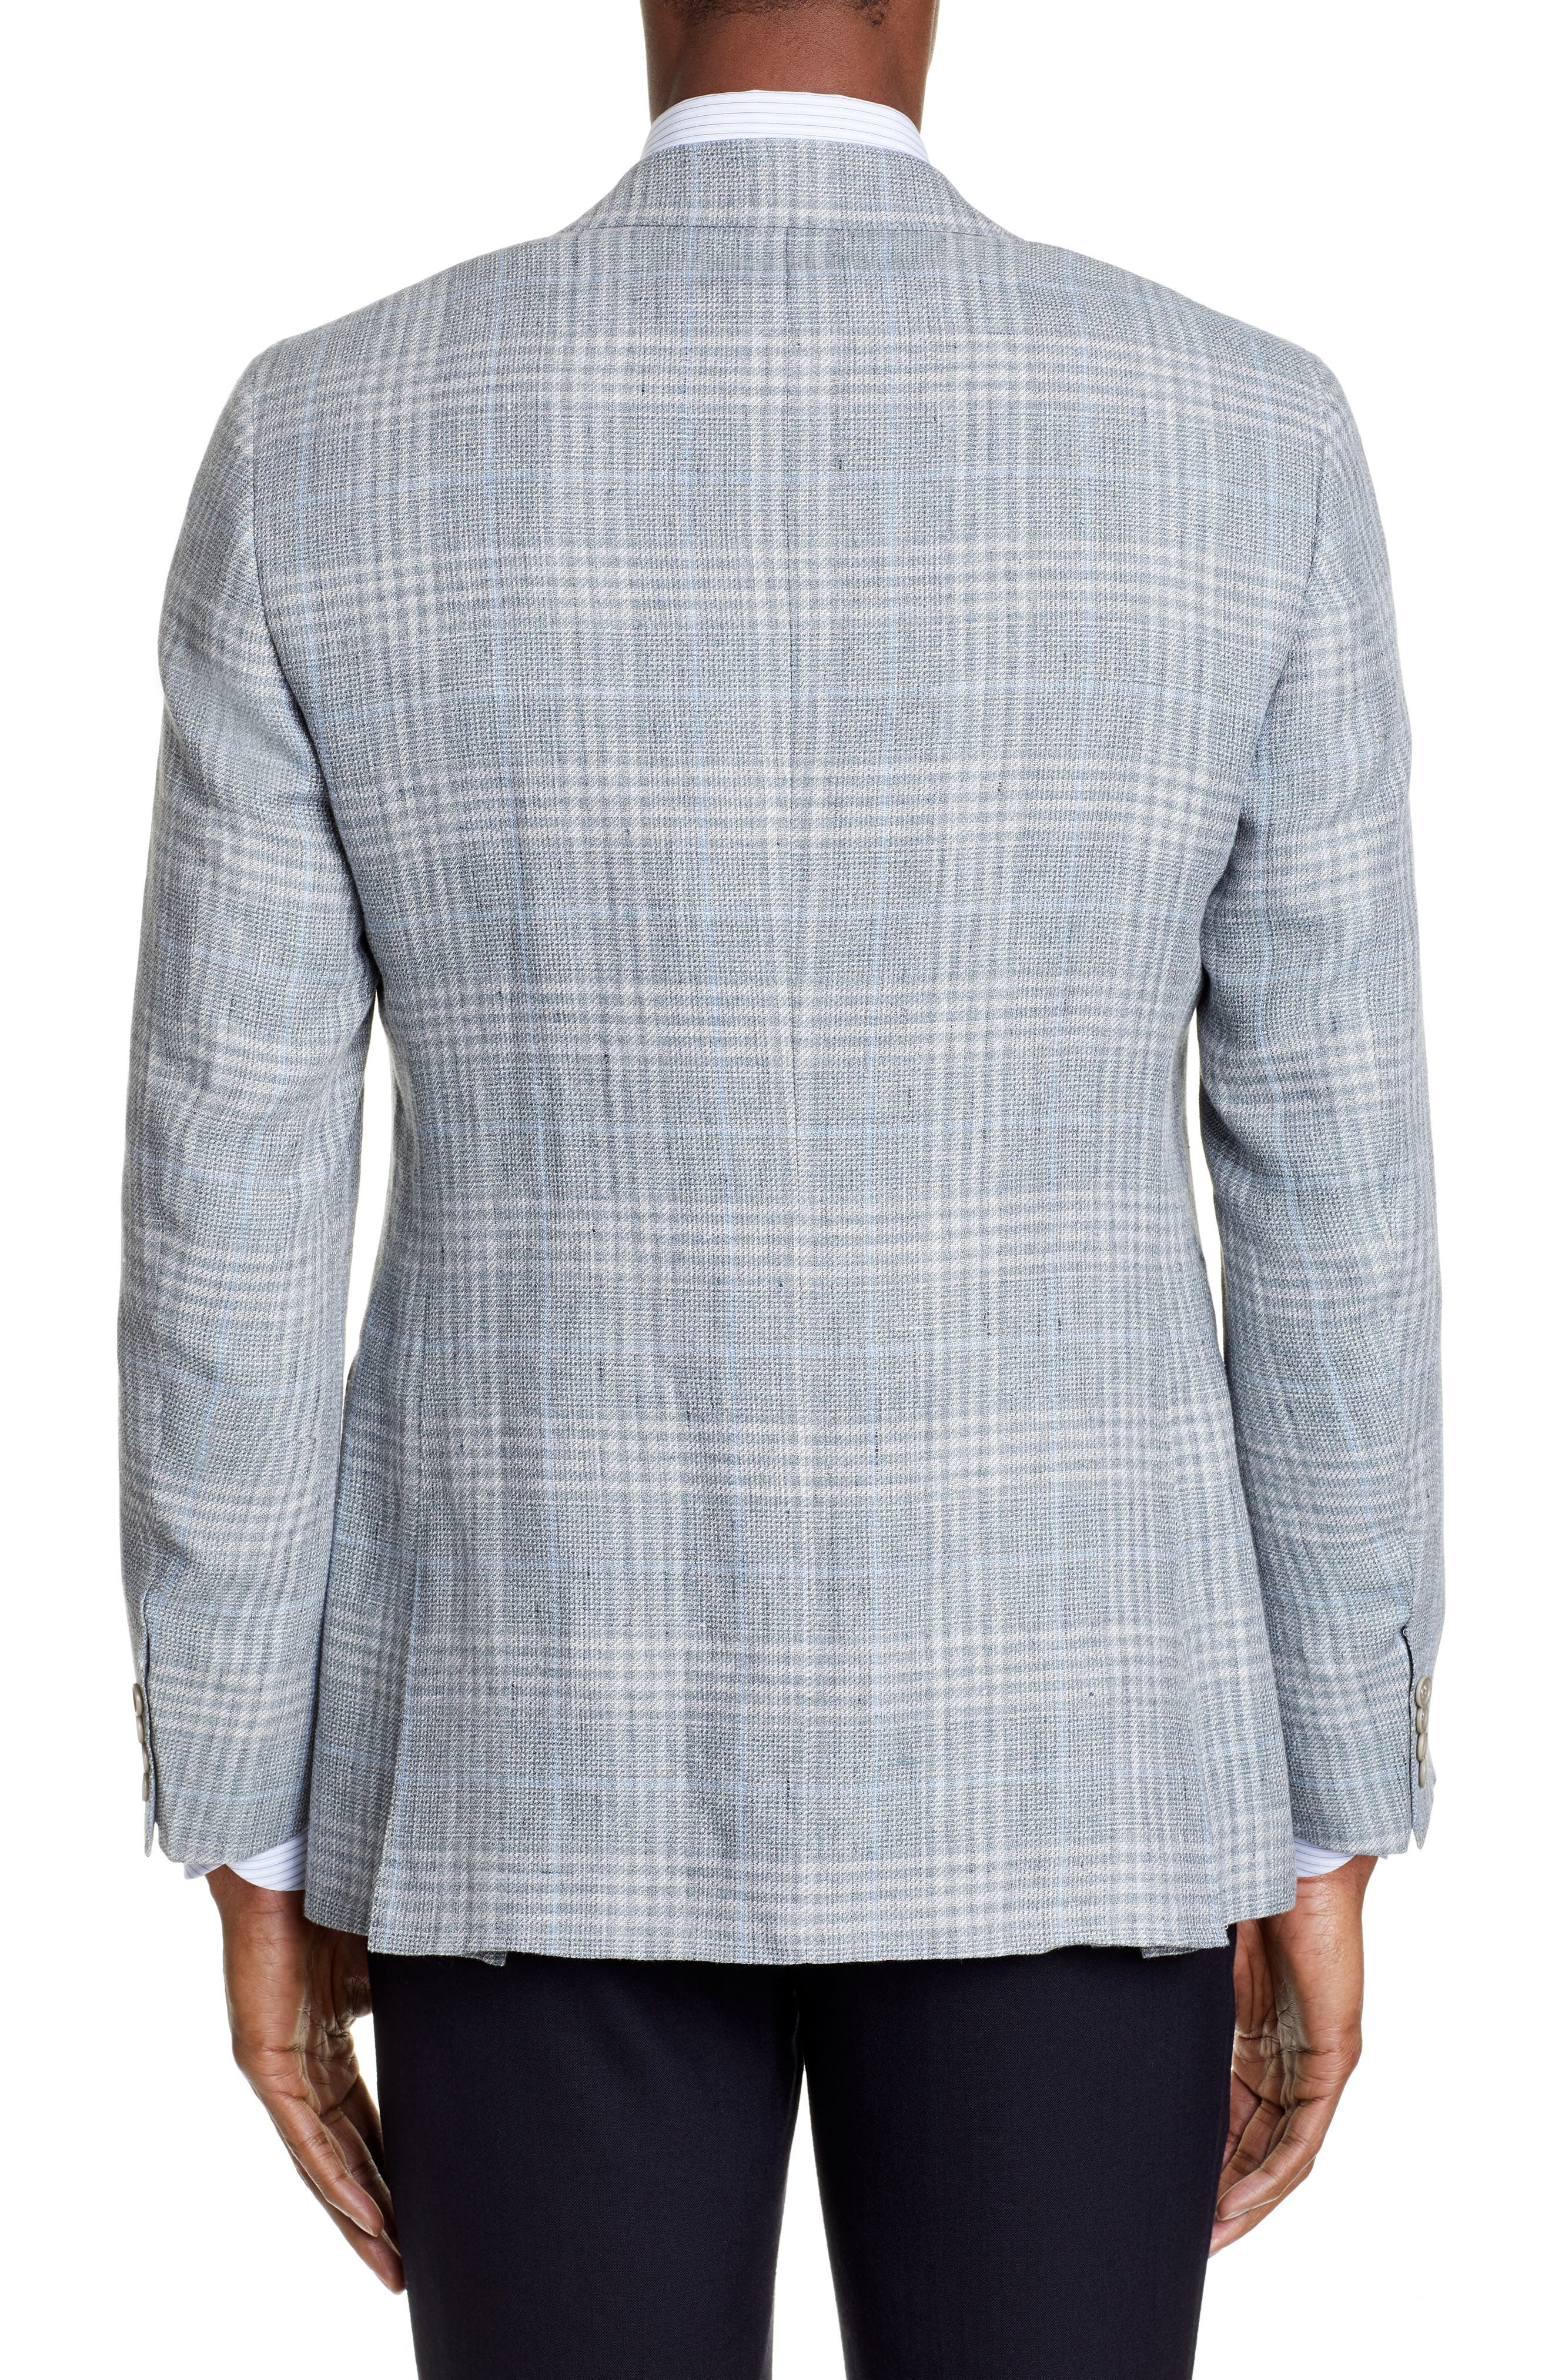 CANALI, Sienna Classic Fit Plaid Linen & Wool Sport Coat, Alternate thumbnail 2, color, LIGHT GREEN